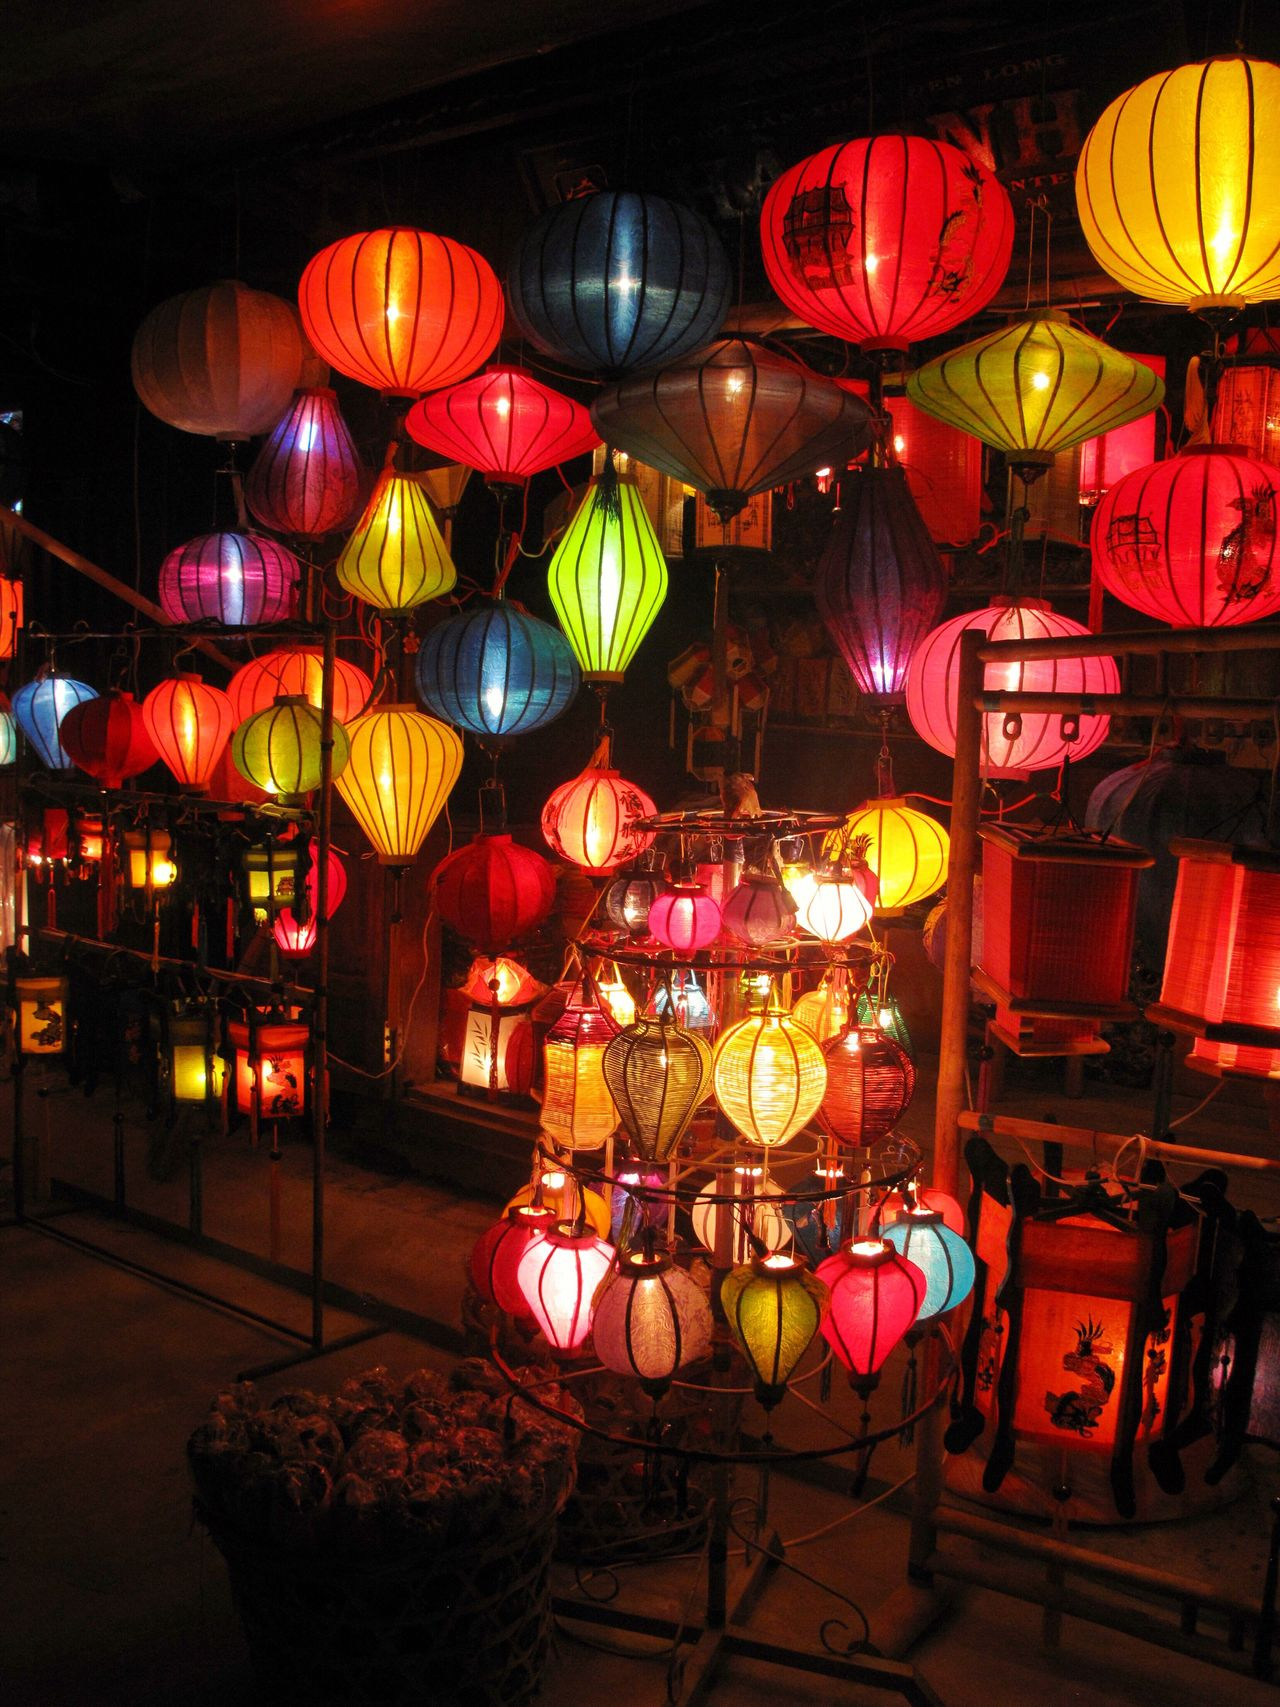 Multi Colored Night Cultures Chinese Lantern Celebration Illuminated Lantern No People Chinese Lantern Festival Large Group Of Objects Outdoors Architecture Hoi An Vietnam Travel Destinations From My Point Of View Weltblick Eye4photography  Travel Photography